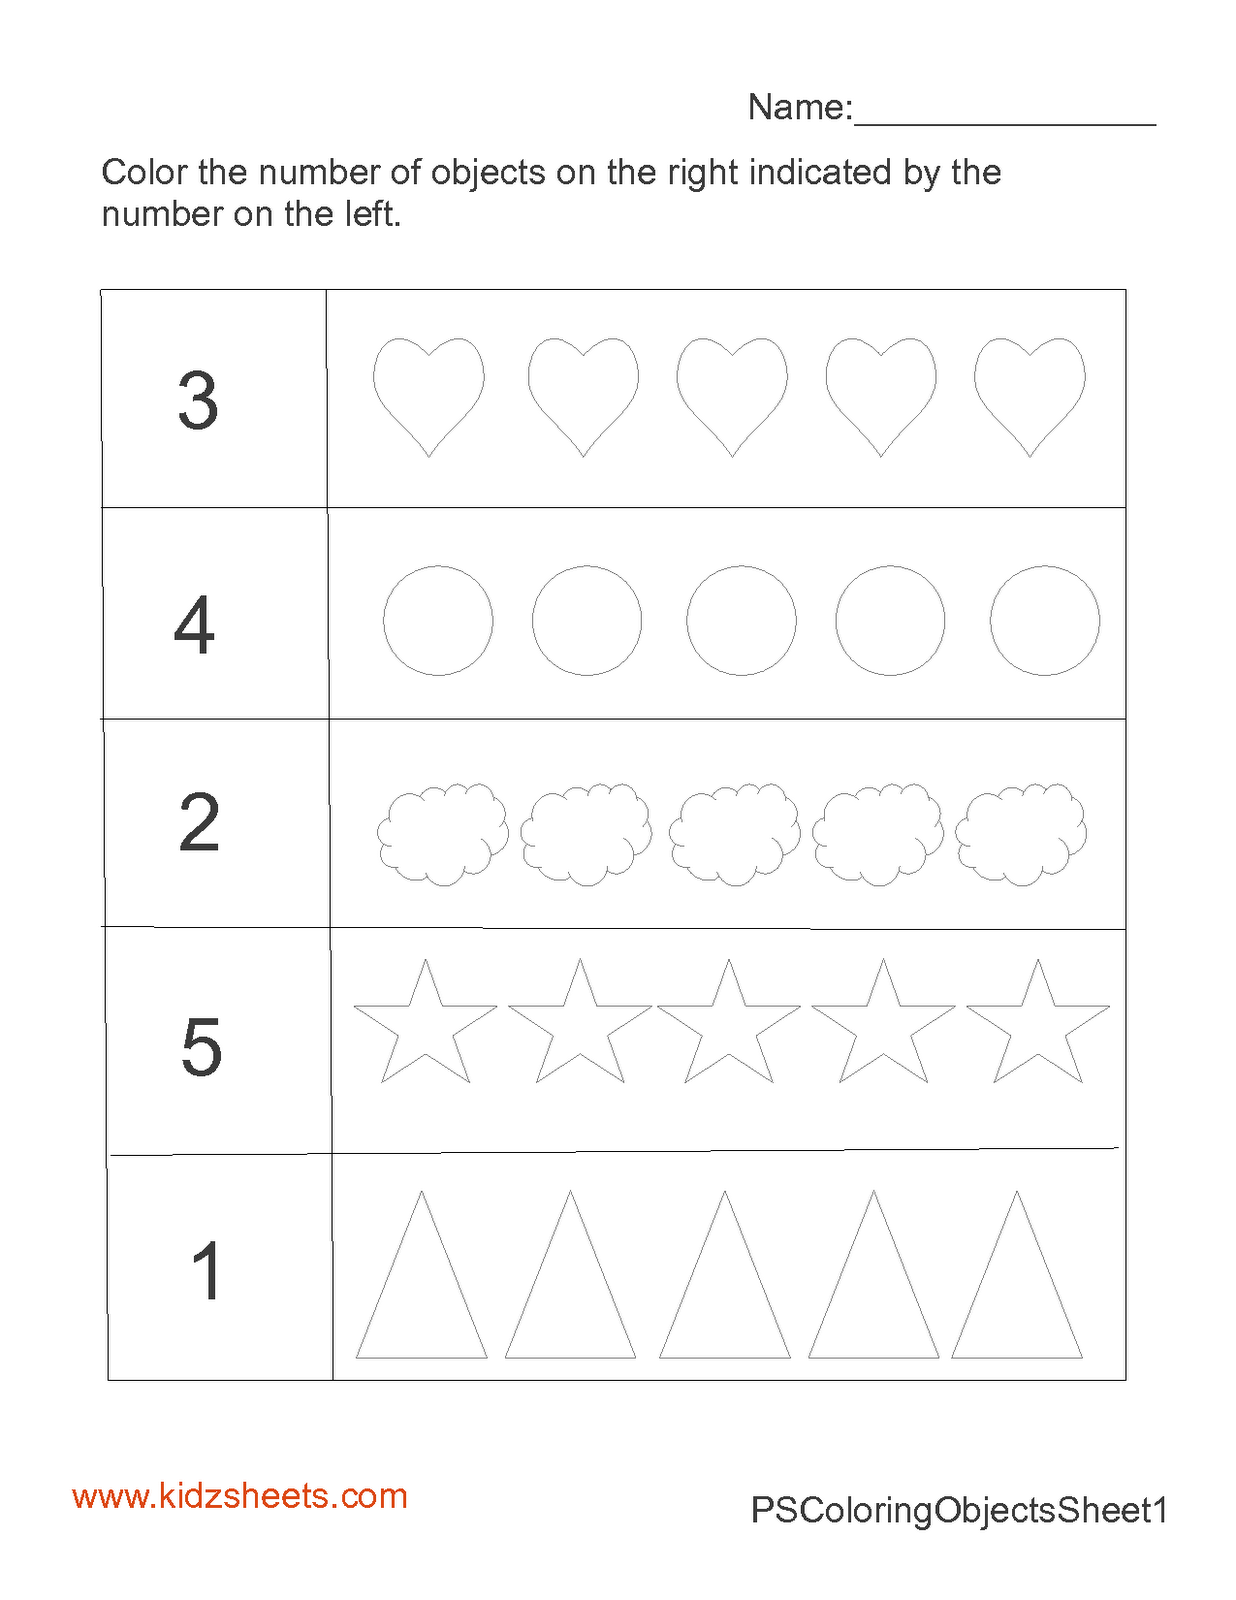 math worksheet : kidz worksheets preschool count  color worksheet1 : Preschool Math Worksheets Counting